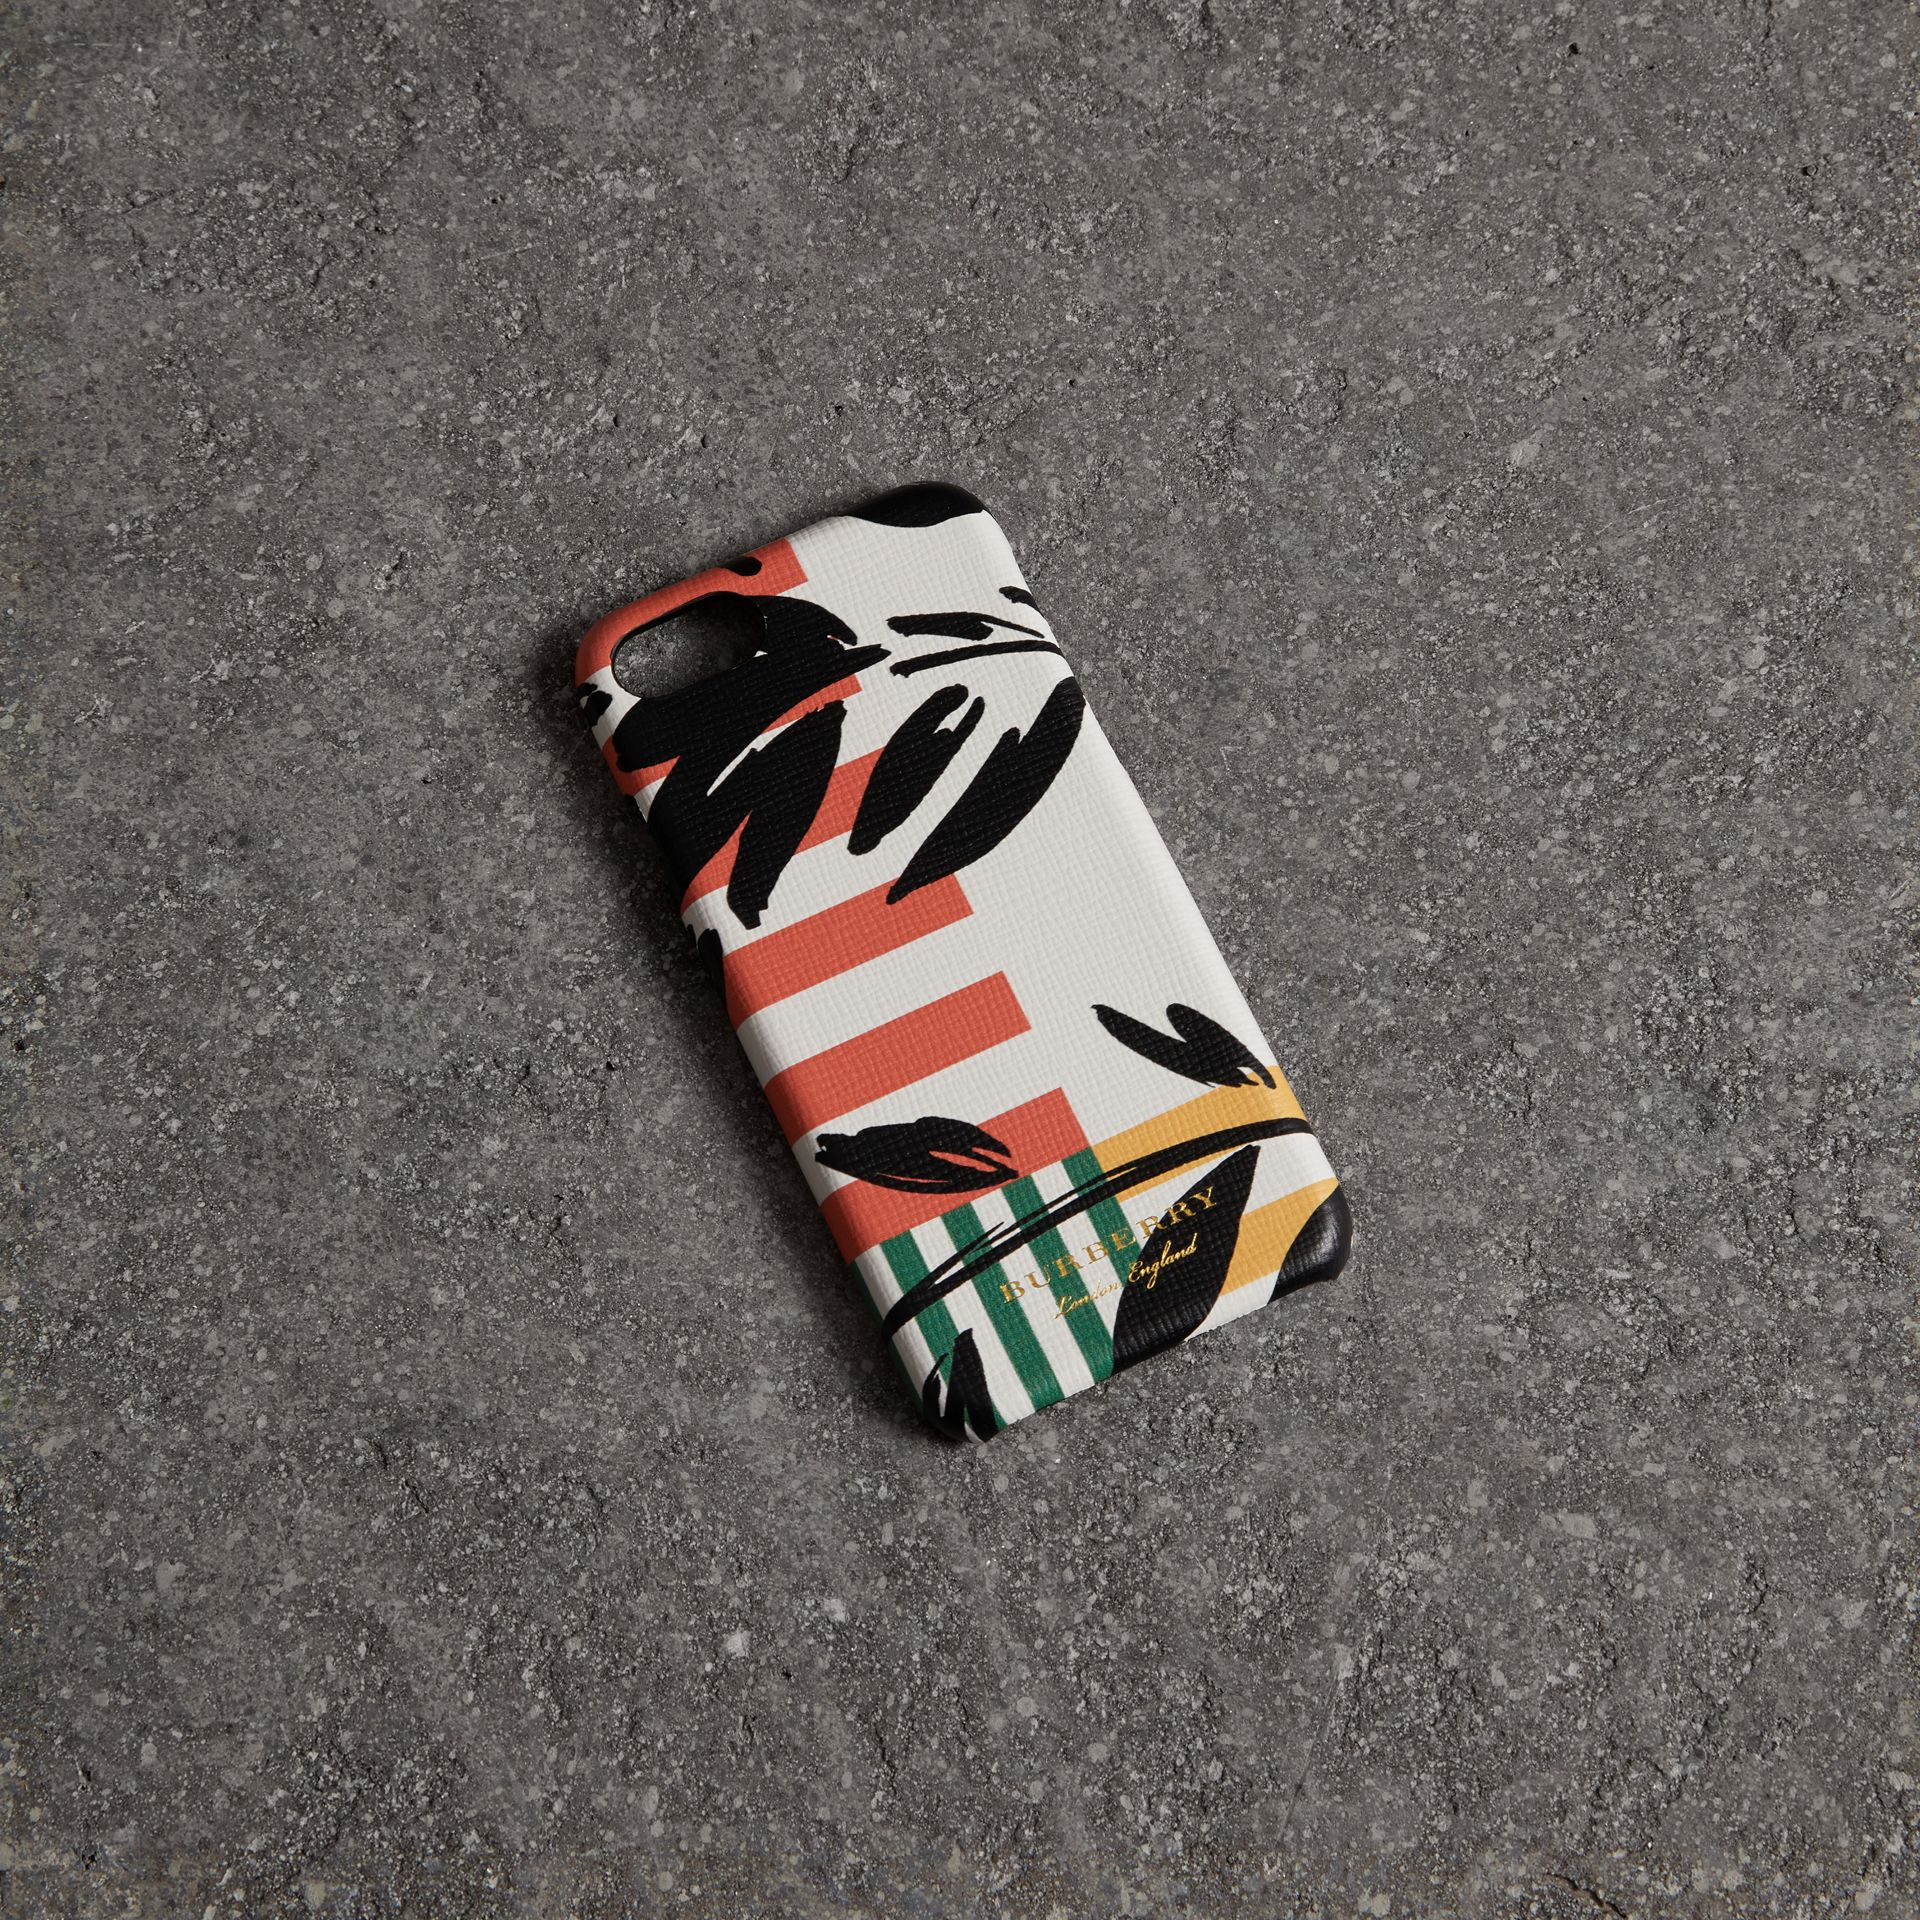 Floral Stripe Print Leather iPhone 8 Case in Patchwork | Burberry - gallery image 0